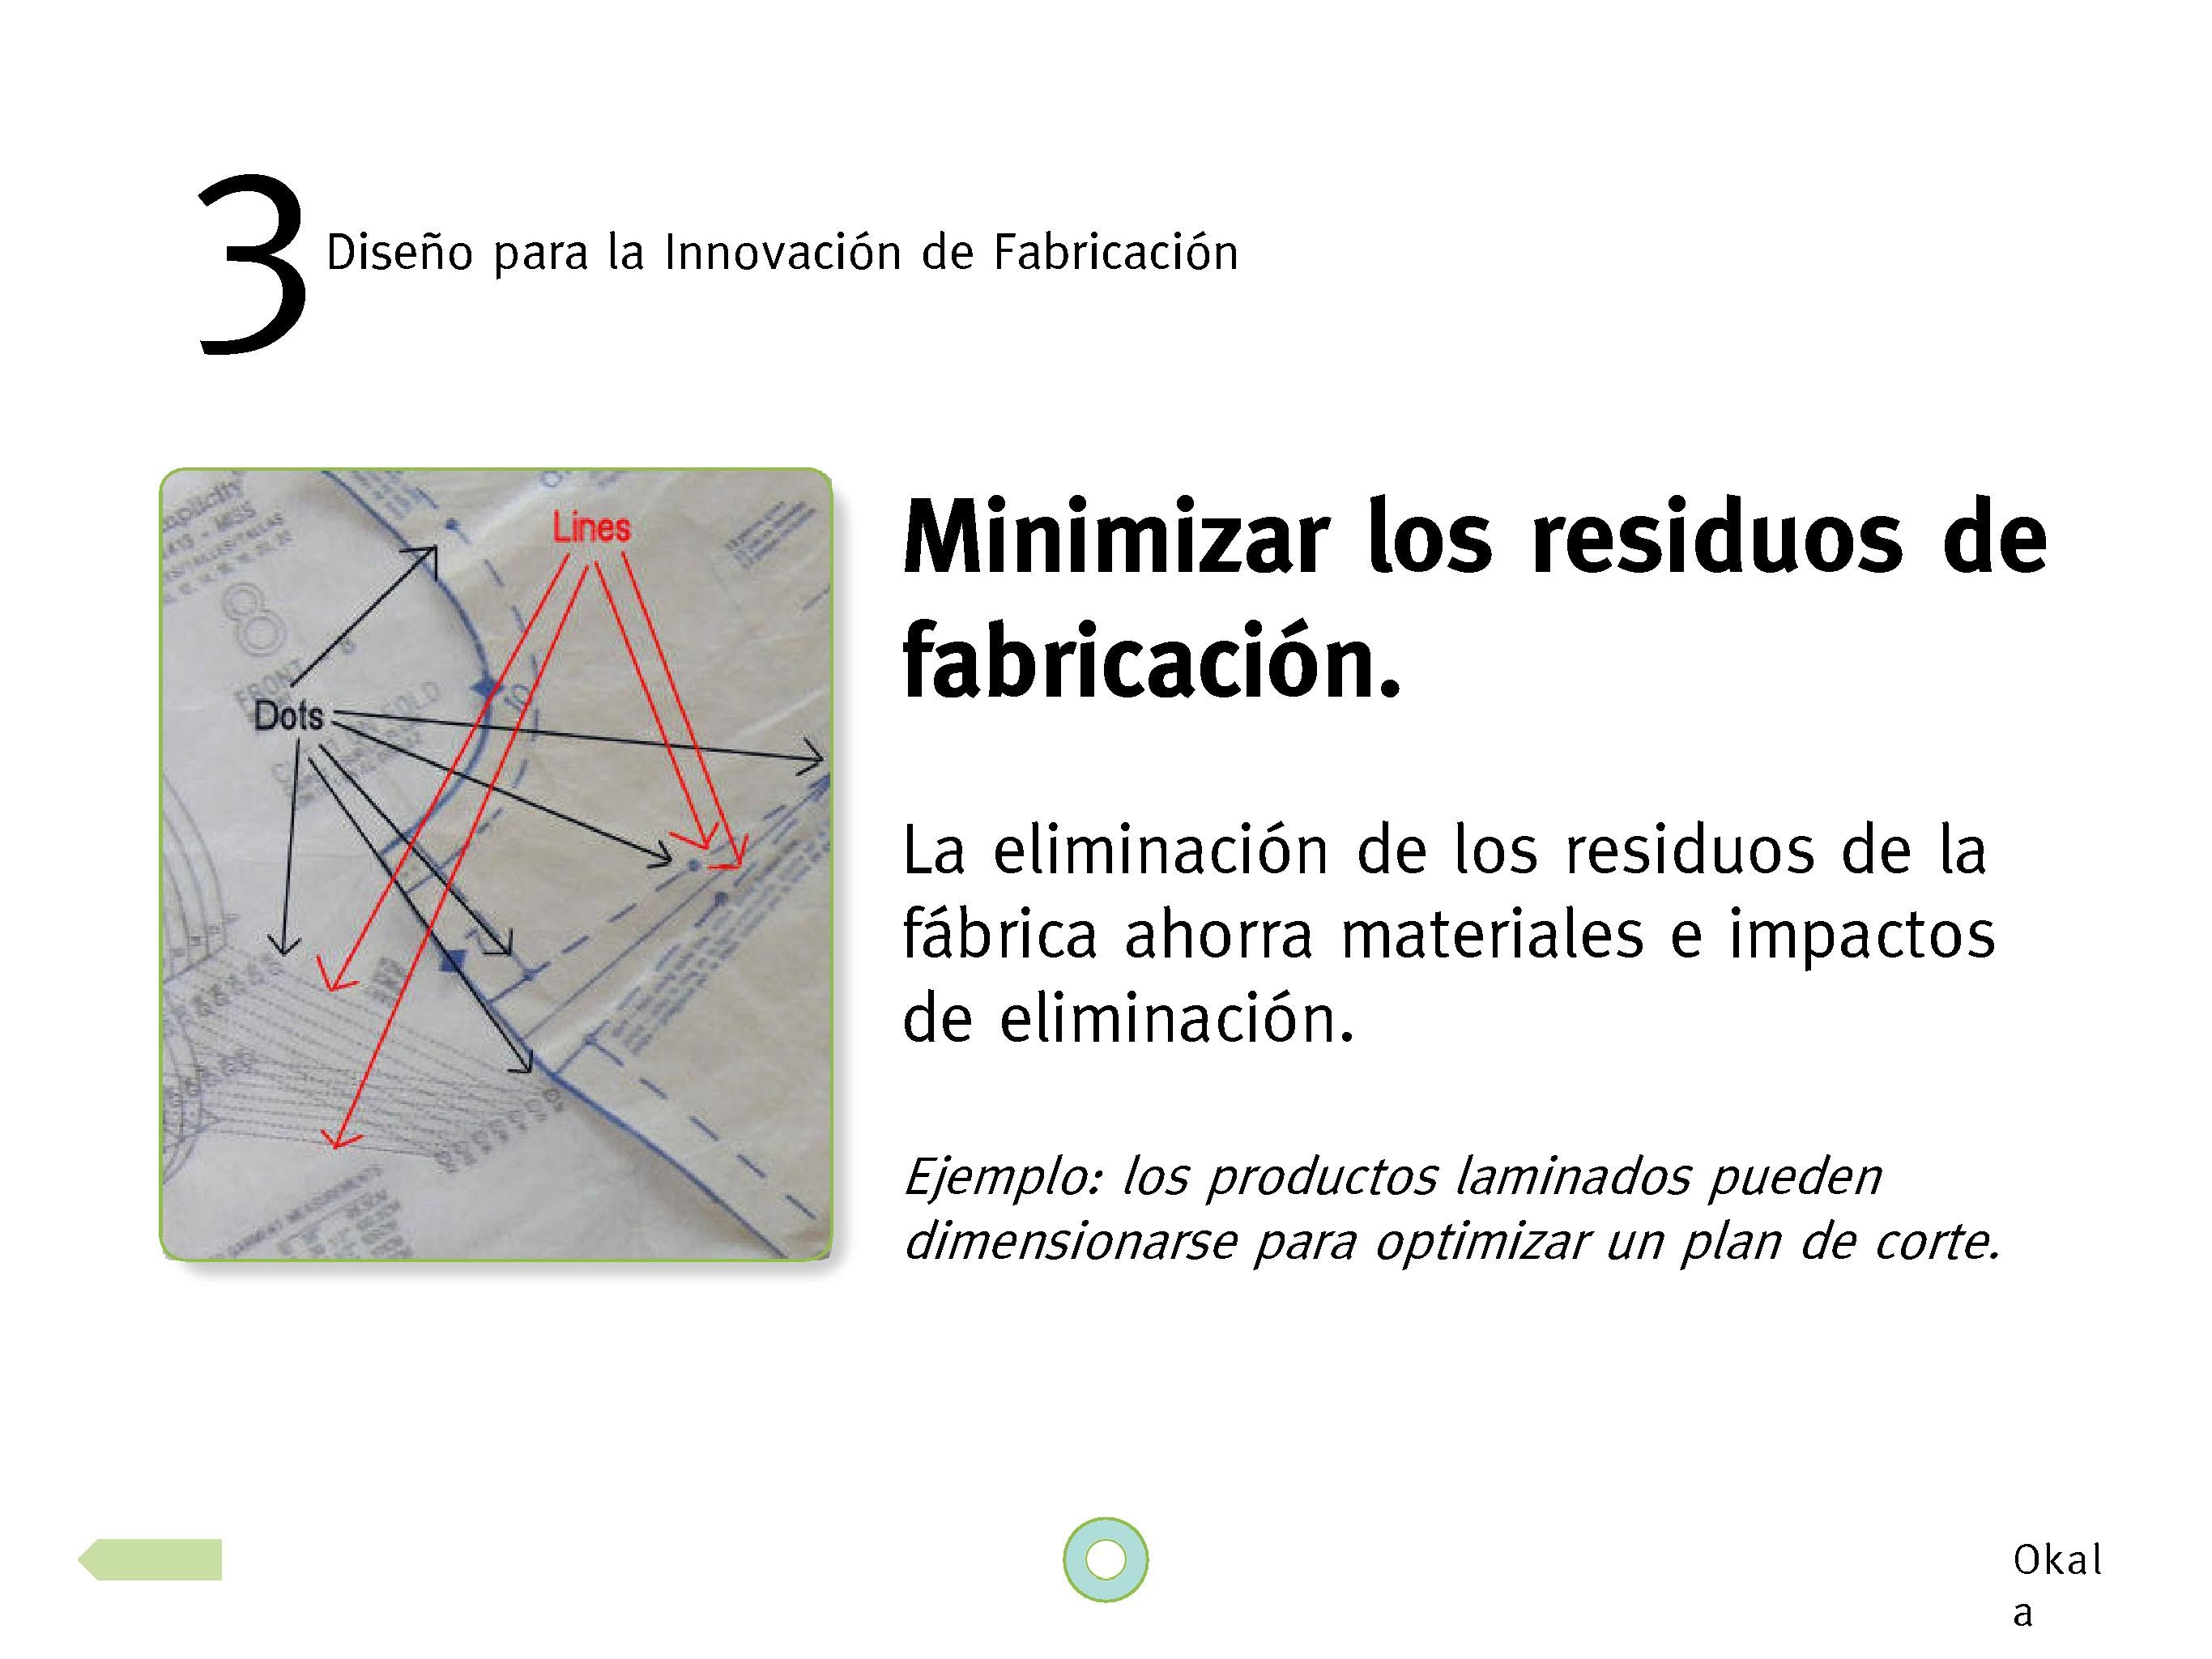 okala-ecodesign-strategy-guide-2012-spanish.new_page_16-1